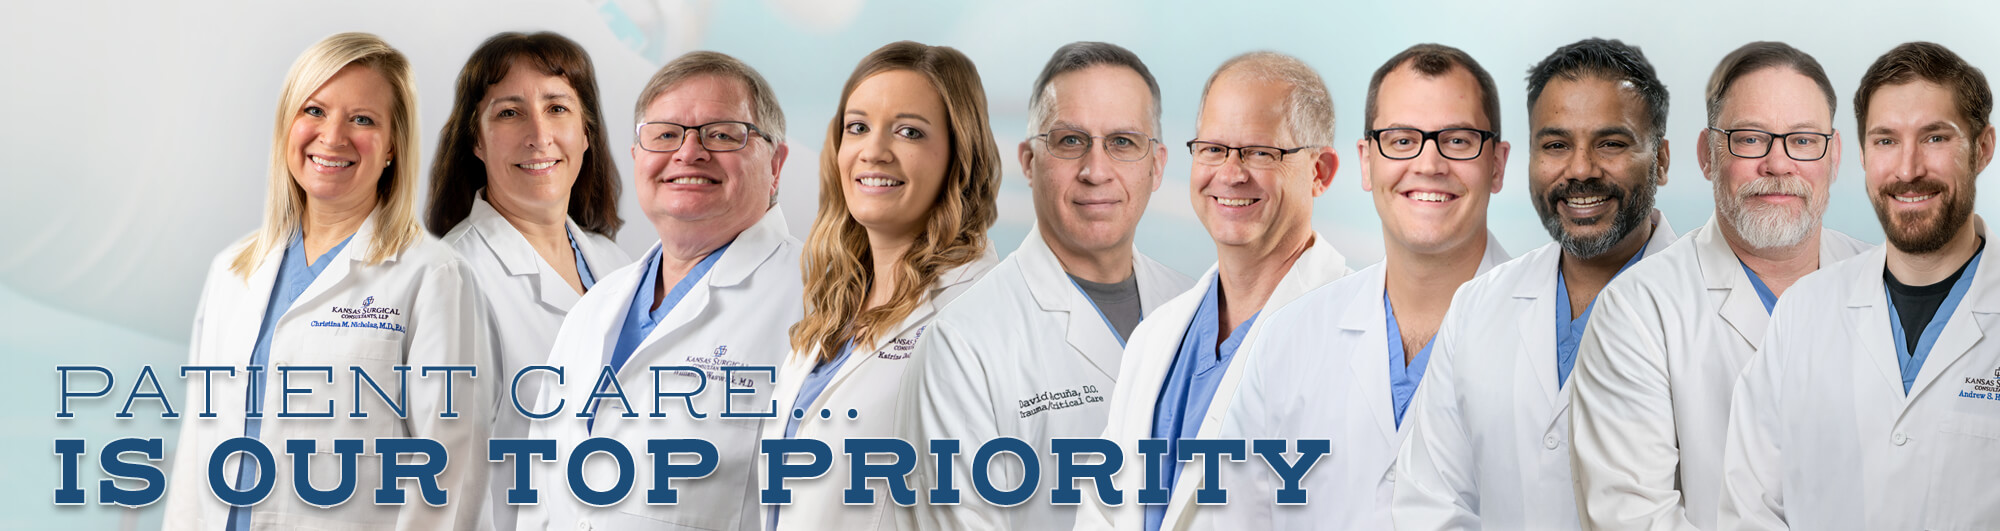 At Kansas Surgical Consultants our talented providers believe that Patient Care is the top priority